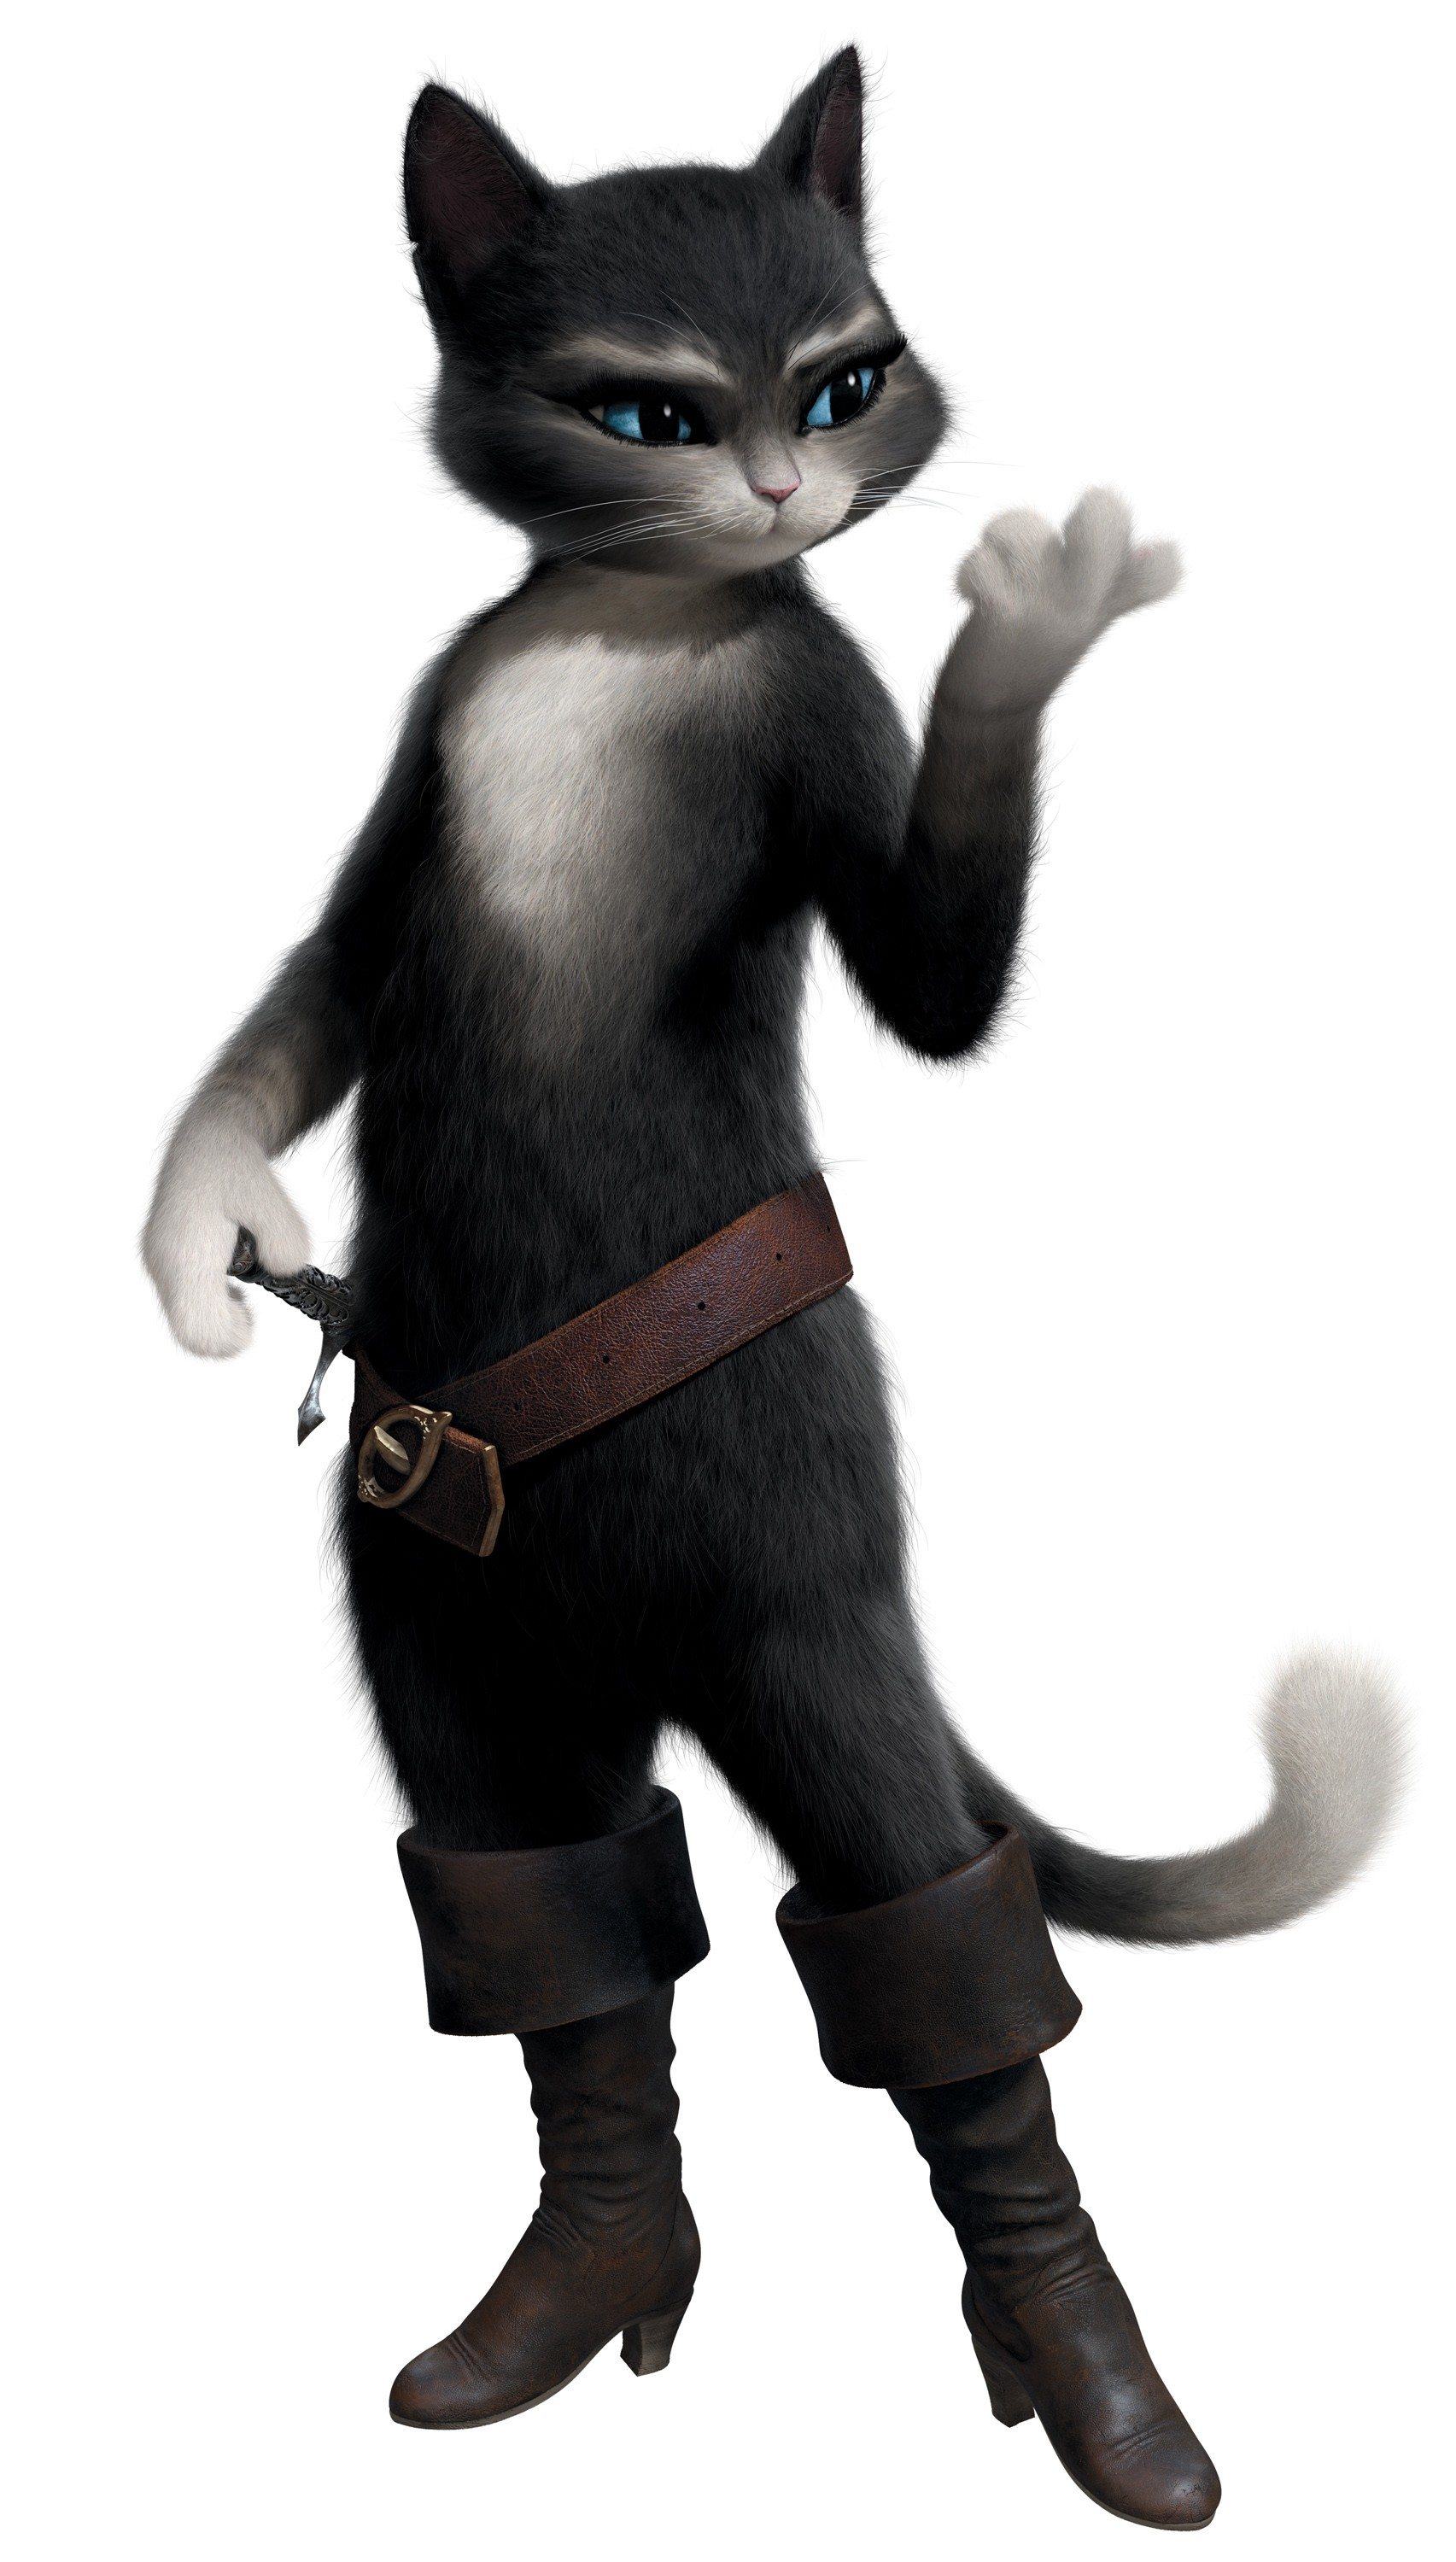 Kitty Softpaws | WikiShrek | FANDOM powered by Wikia